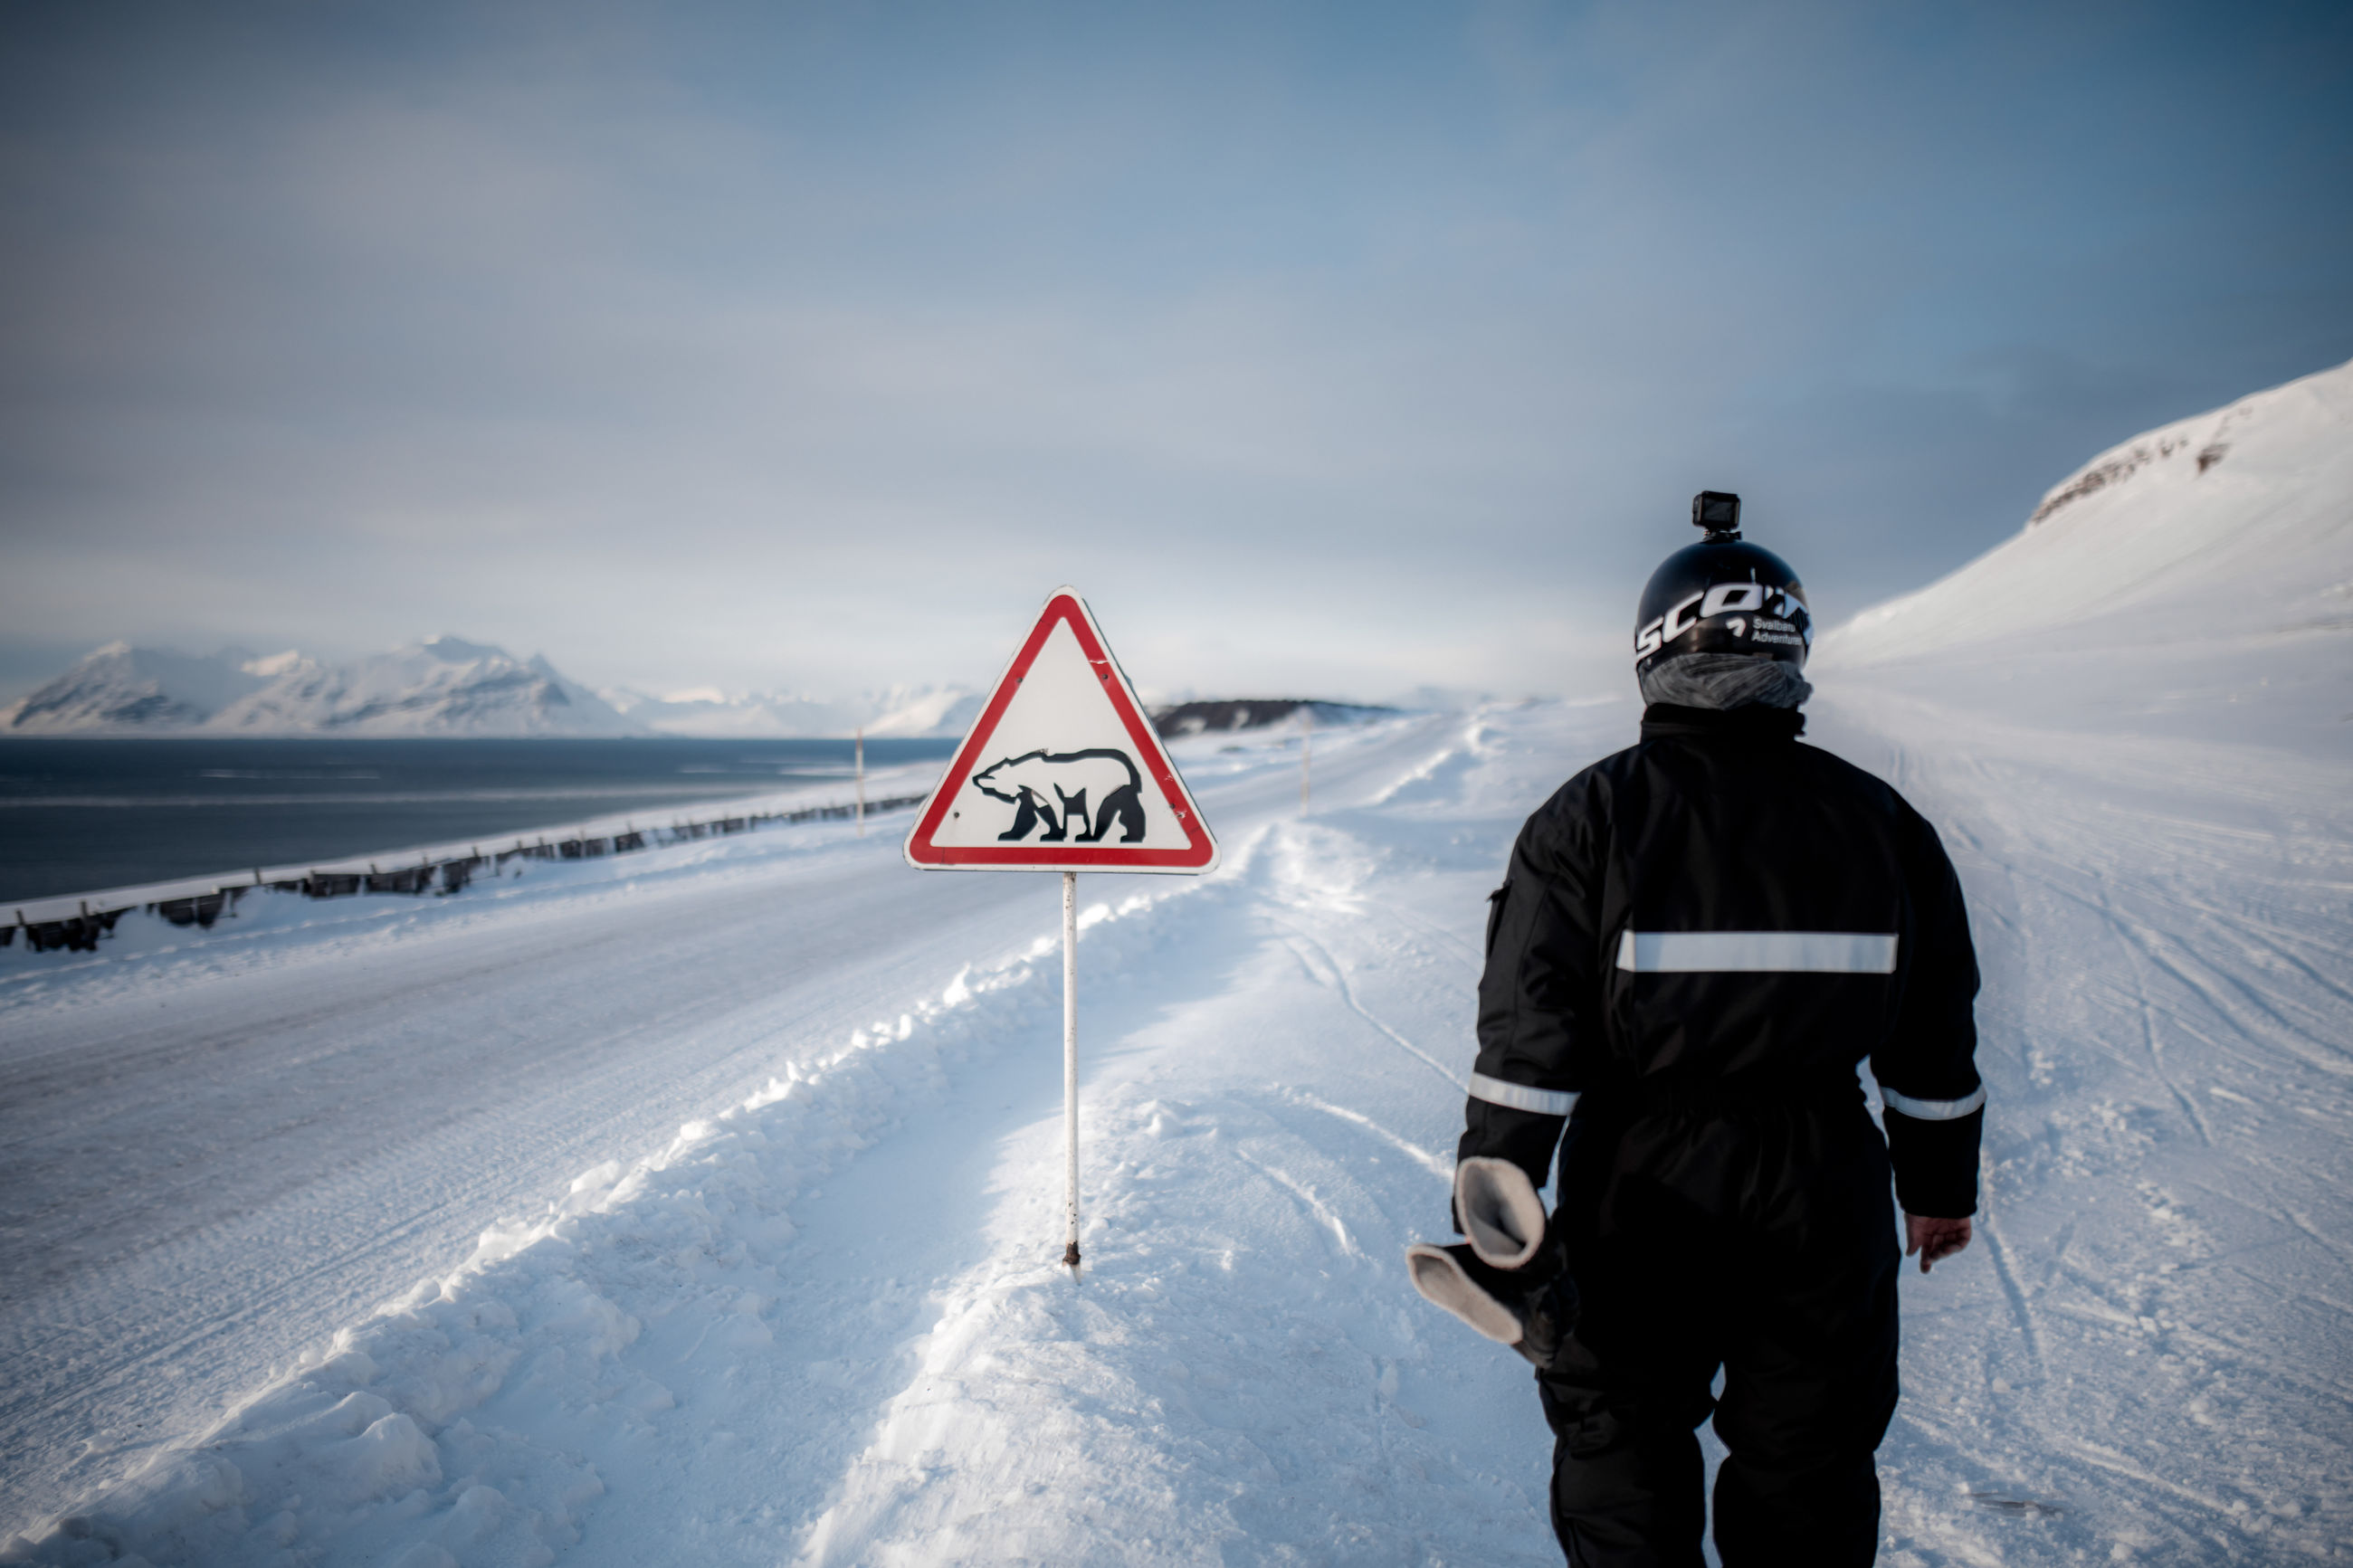 snow, winter, cold temperature, mountain, communication, sign, rear view, nature, sky, scenics - nature, beauty in nature, real people, non-urban scene, day, clothing, warm clothing, leisure activity, one person, warning sign, mountain range, guidance, outdoors, snowcapped mountain